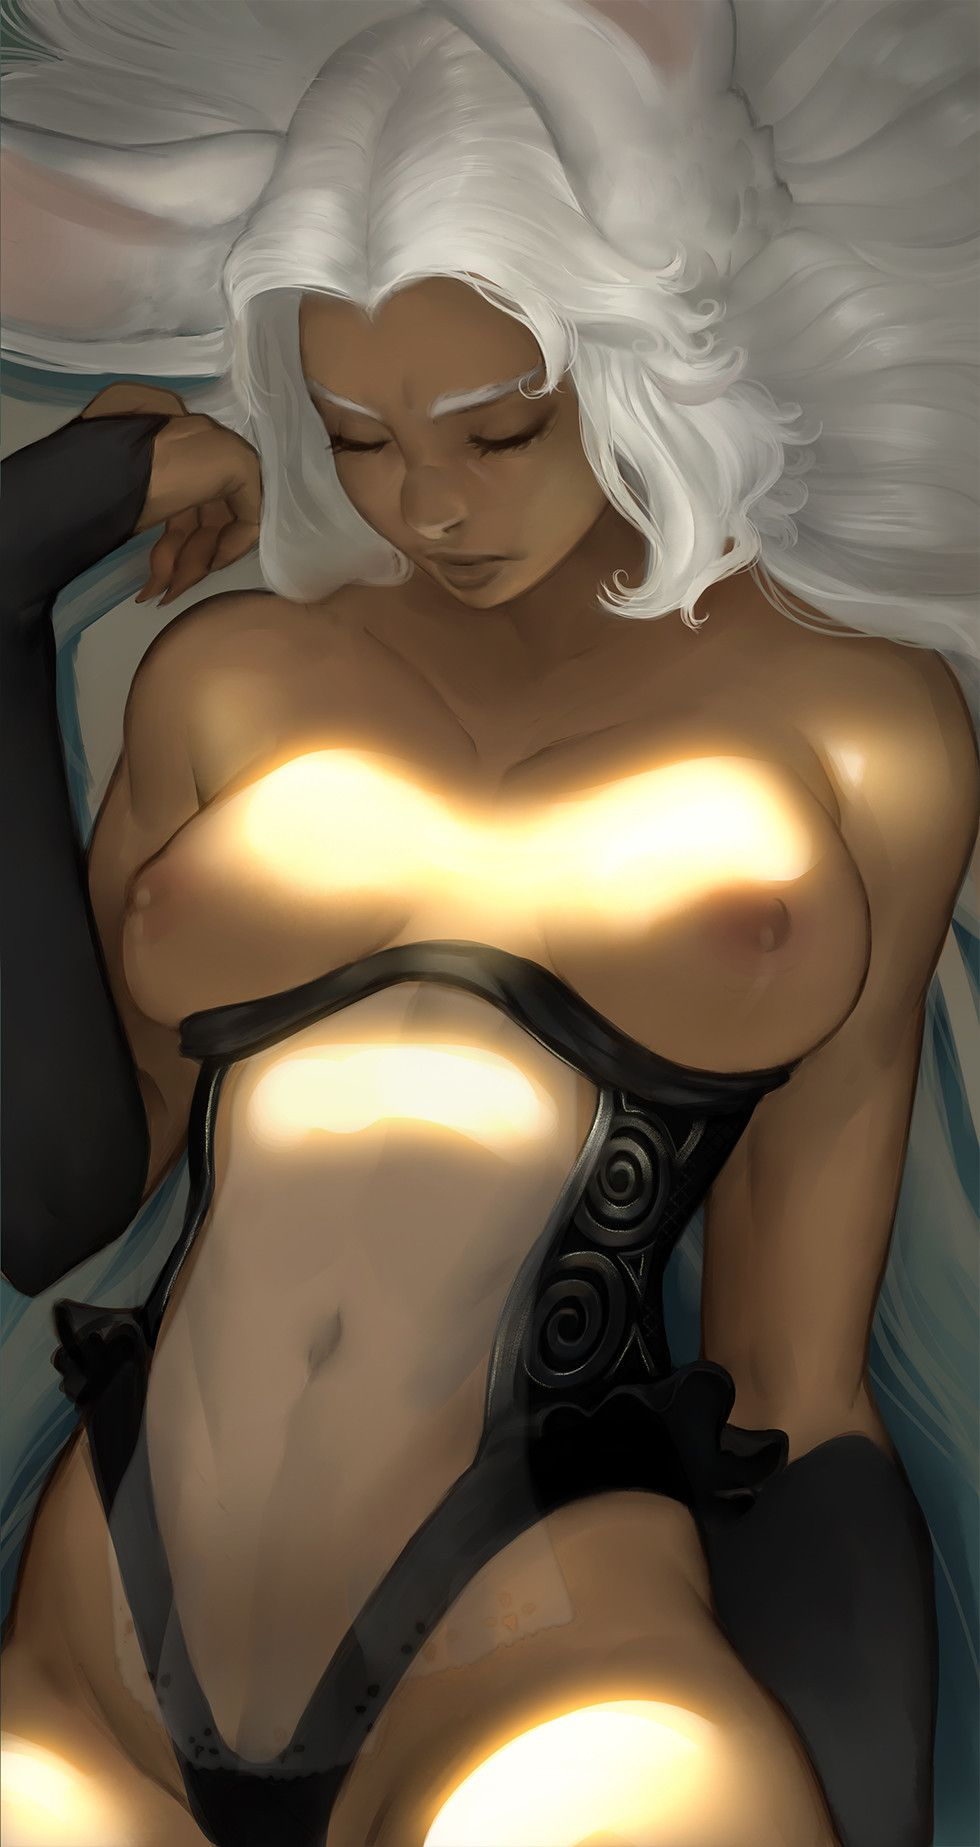 from James nude final fantasy girl pics